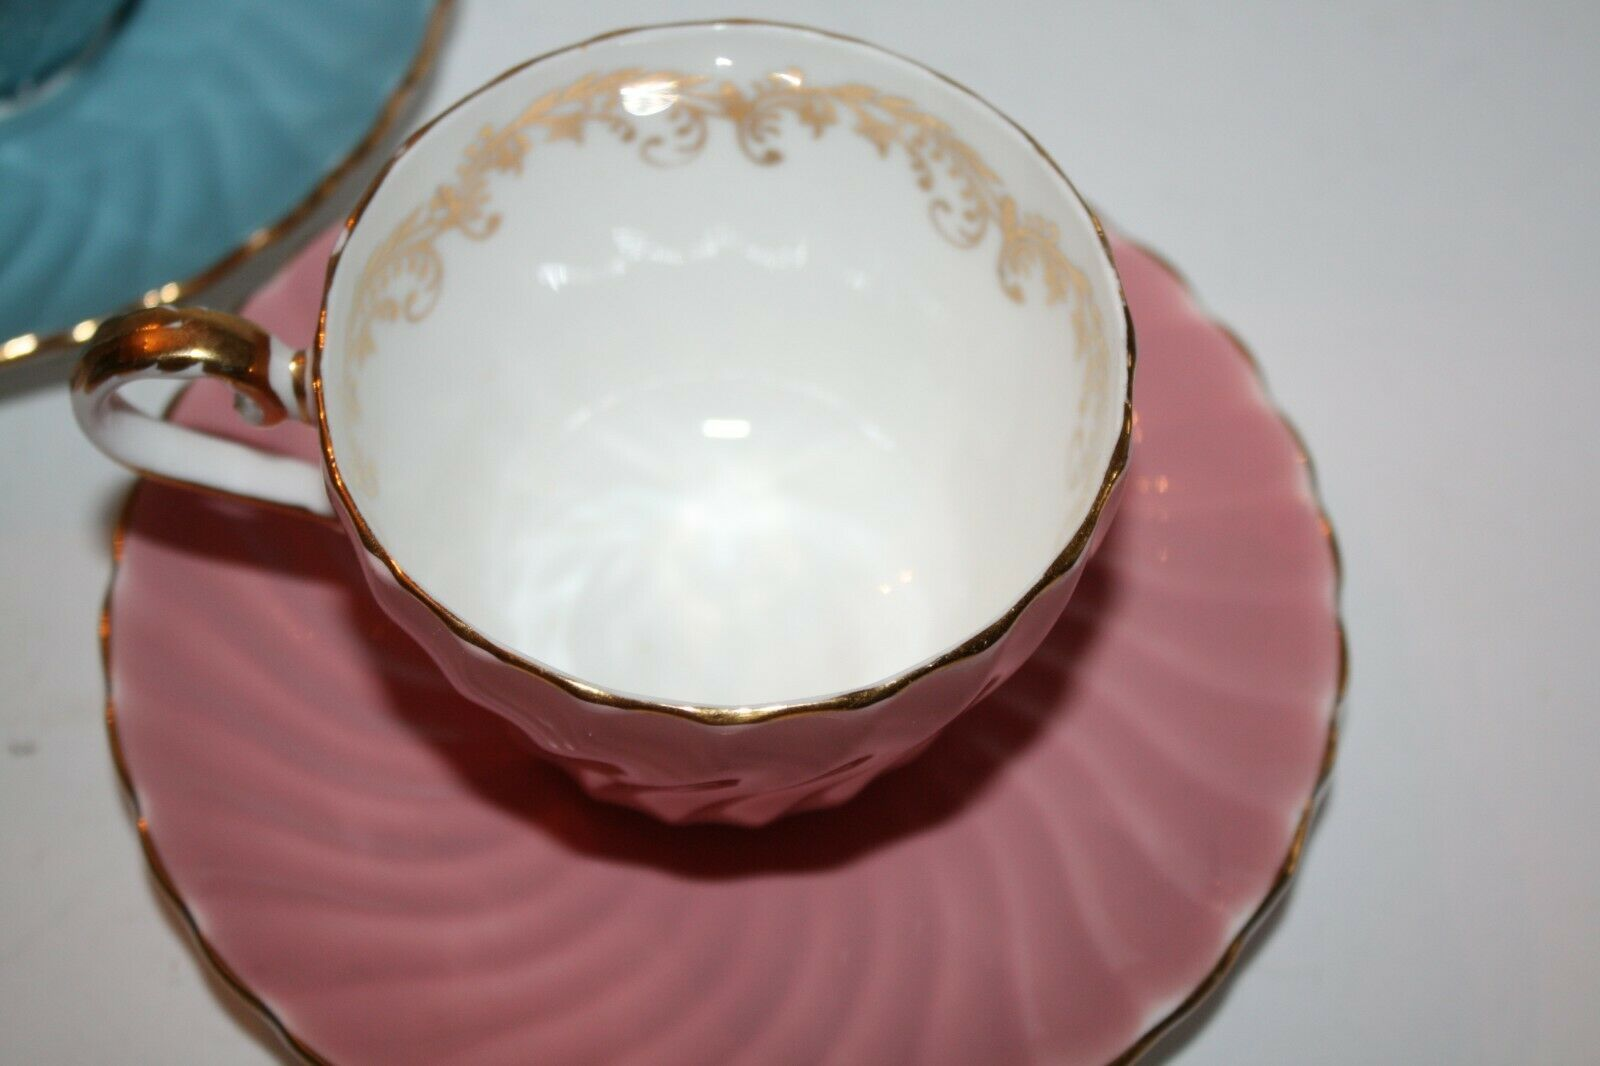 ANYSLEY Two Sets Cups and Saucers Pink and Blue Gold image 2